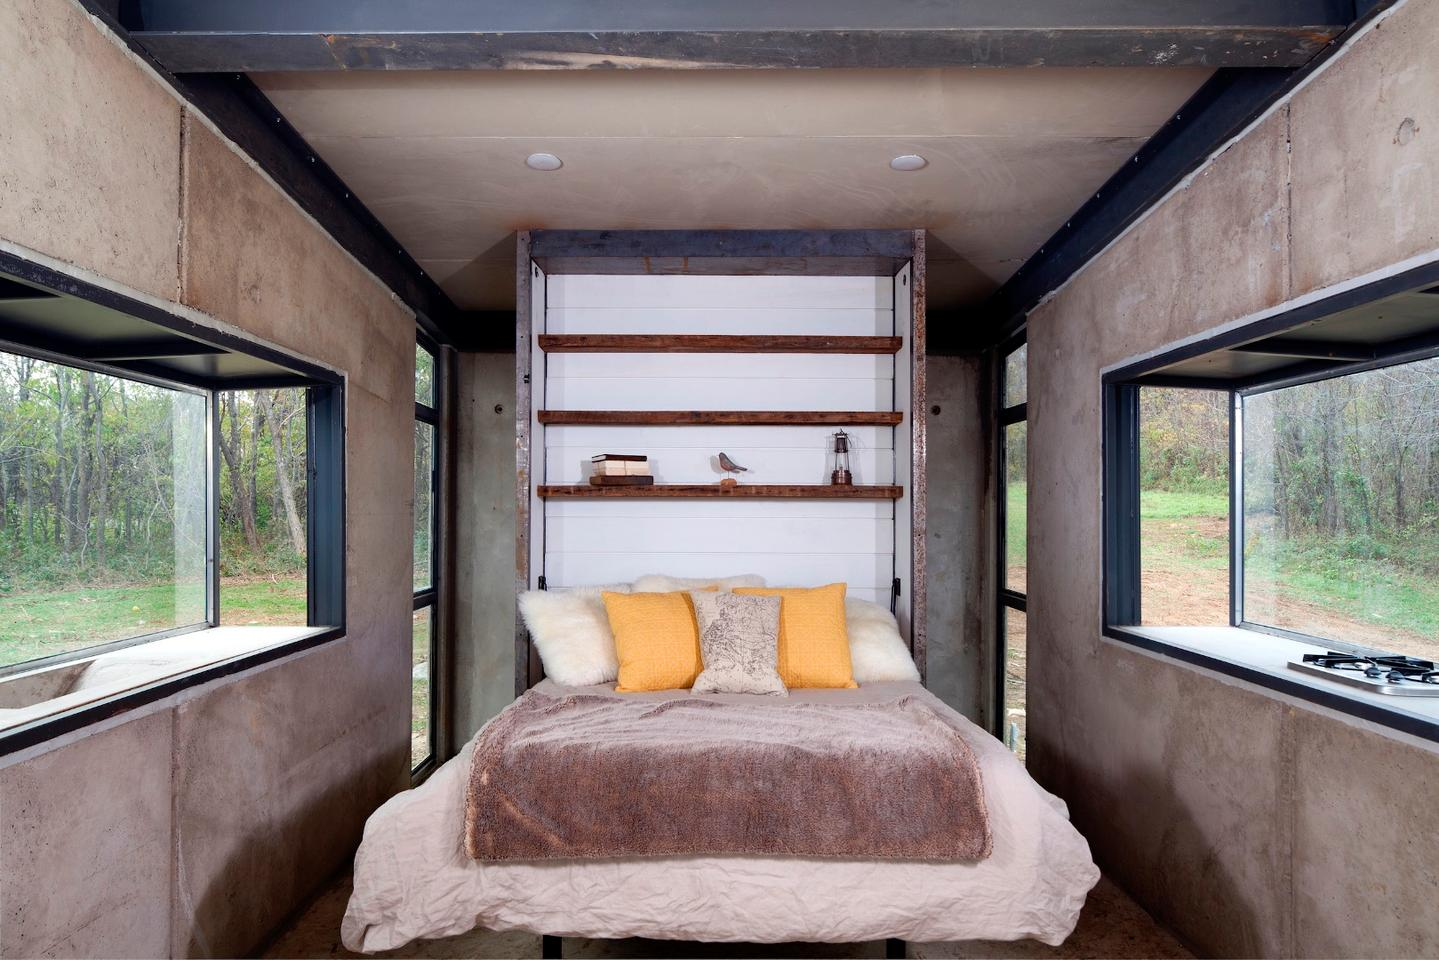 The Lost WhiskyConcrete Cabinhas a total floorspace of 160 sq ft (14.8 sq m)